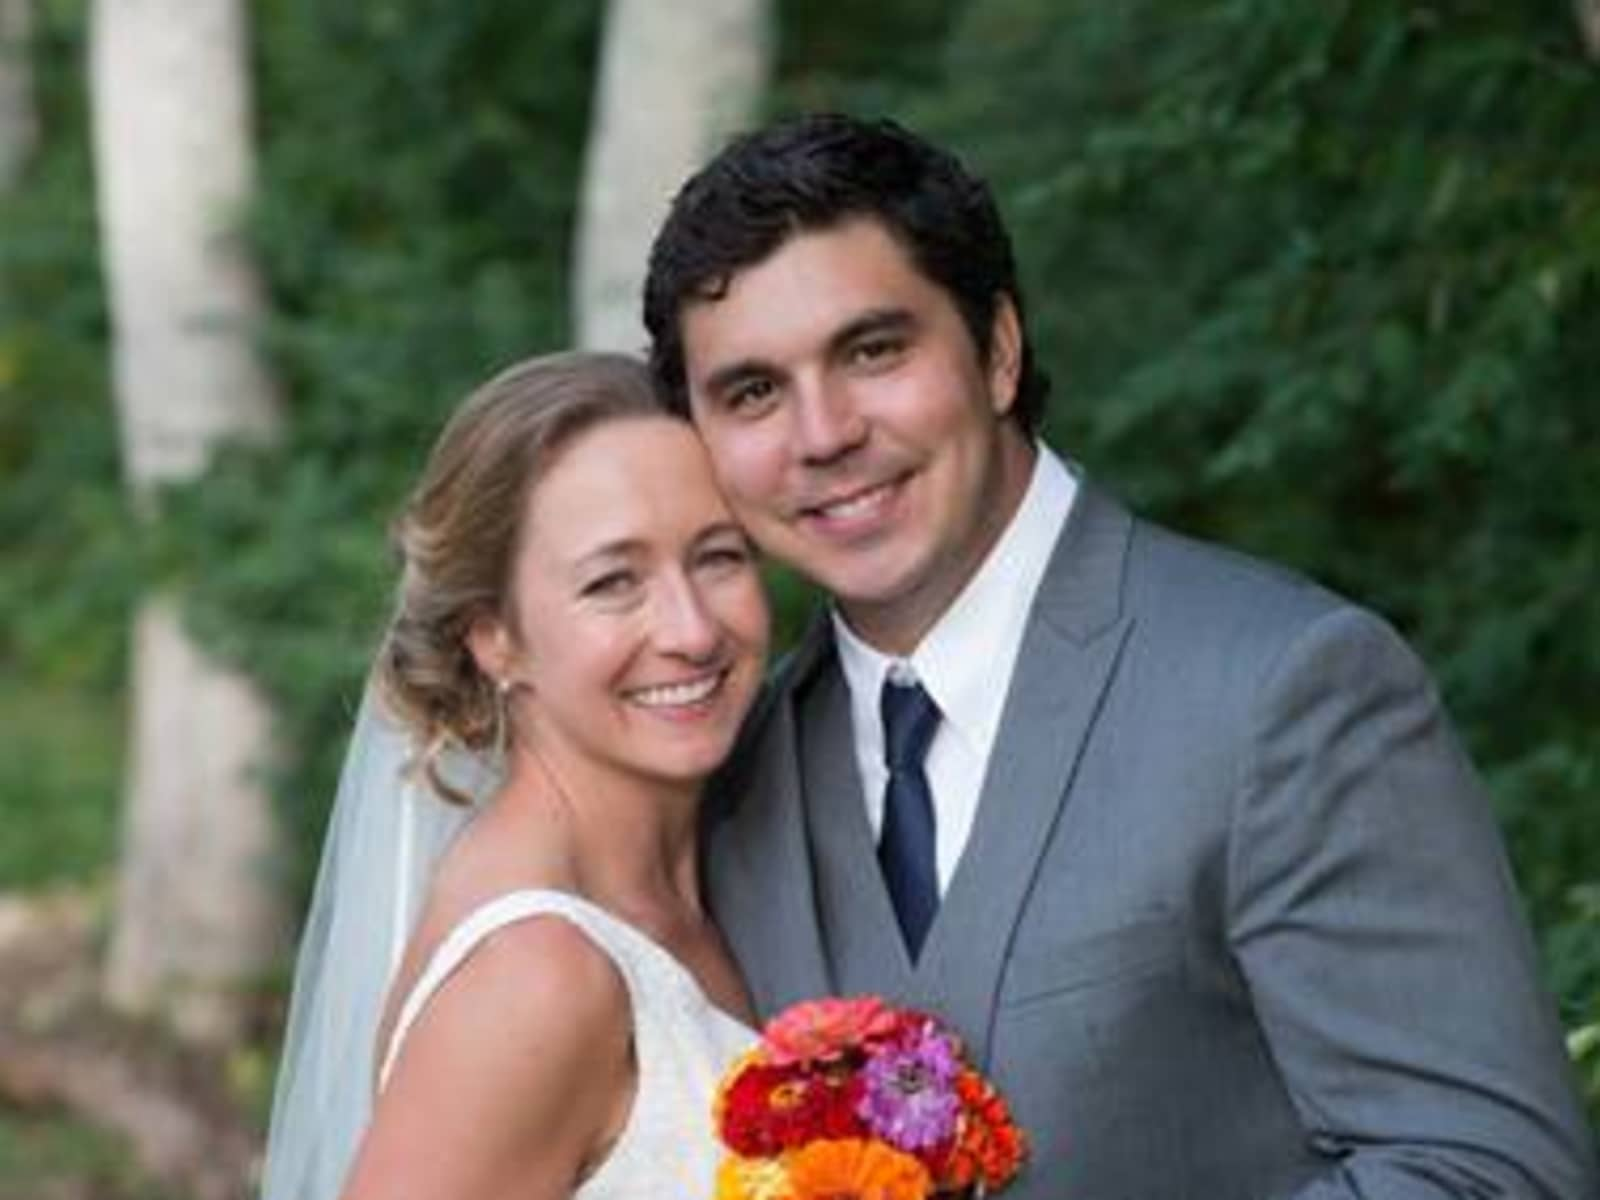 Erica & Austin from Annapolis, Maryland, United States